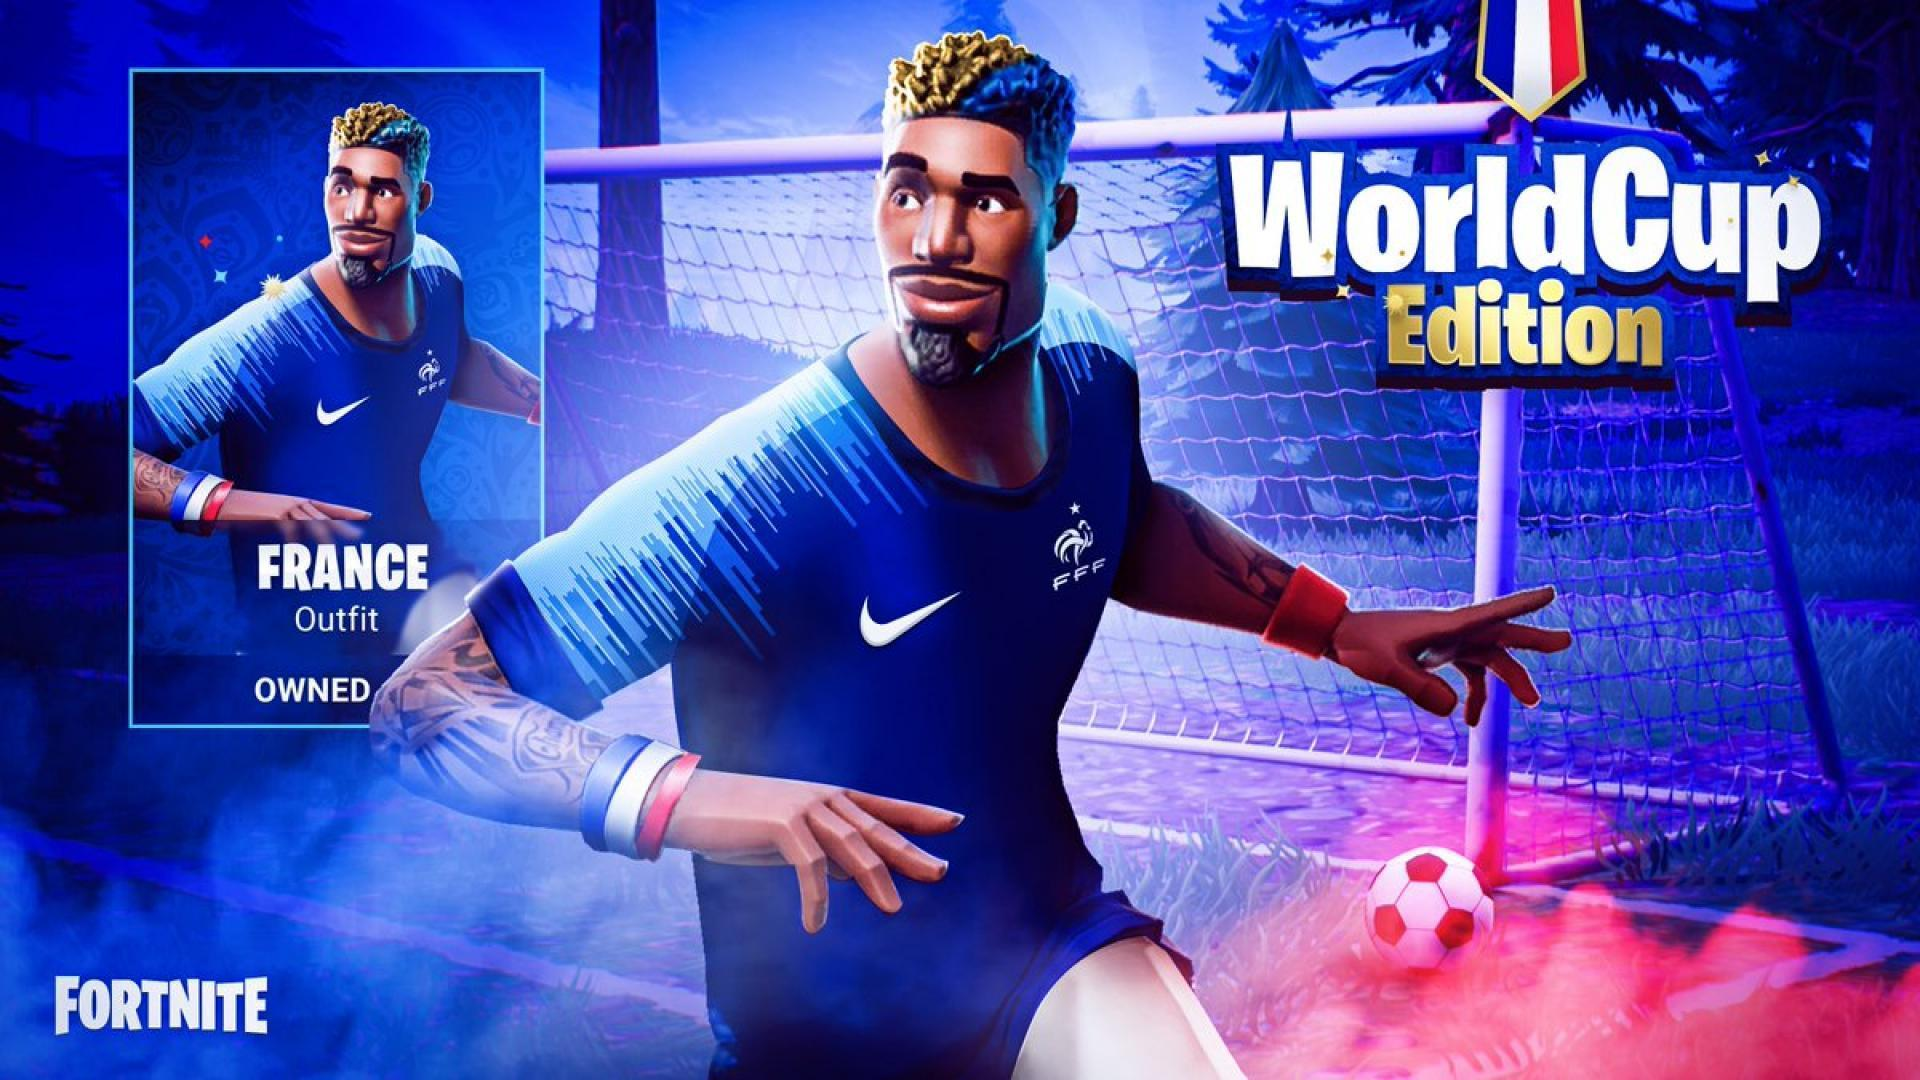 Fortnite Soccer Skin Wallpapers Wallpaper Cave